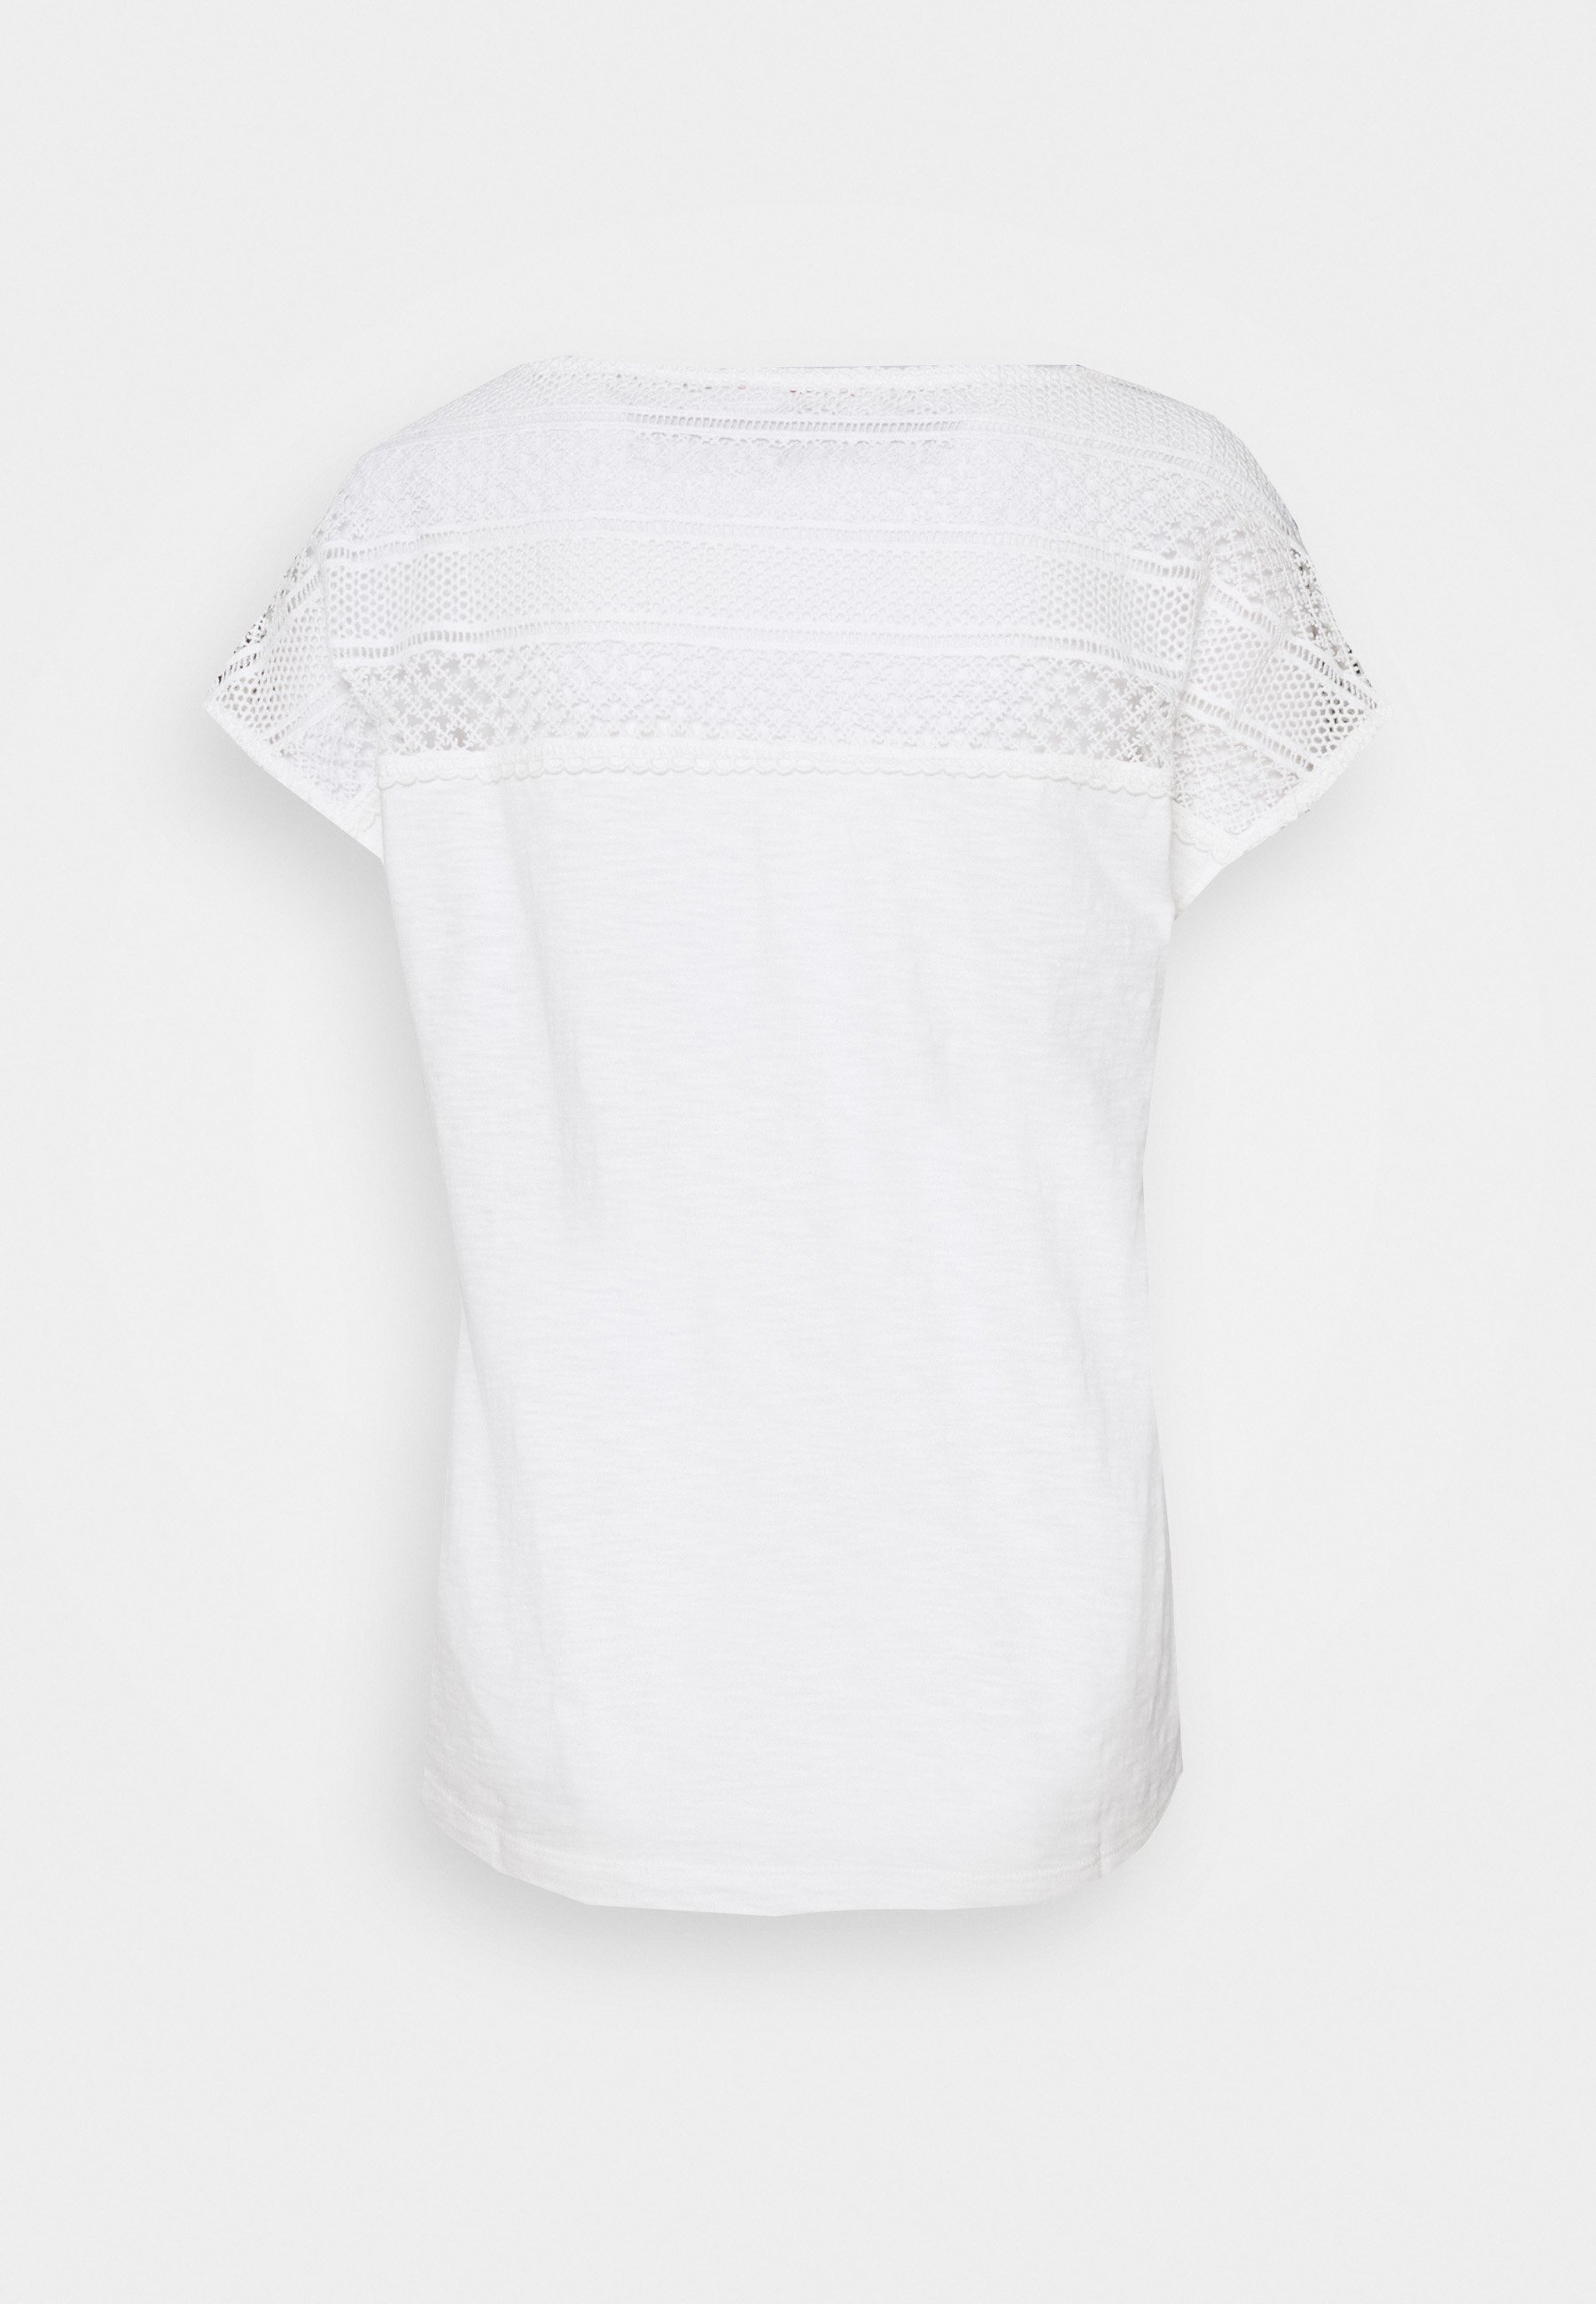 S.oliver T-shirts - Cream/offwhite